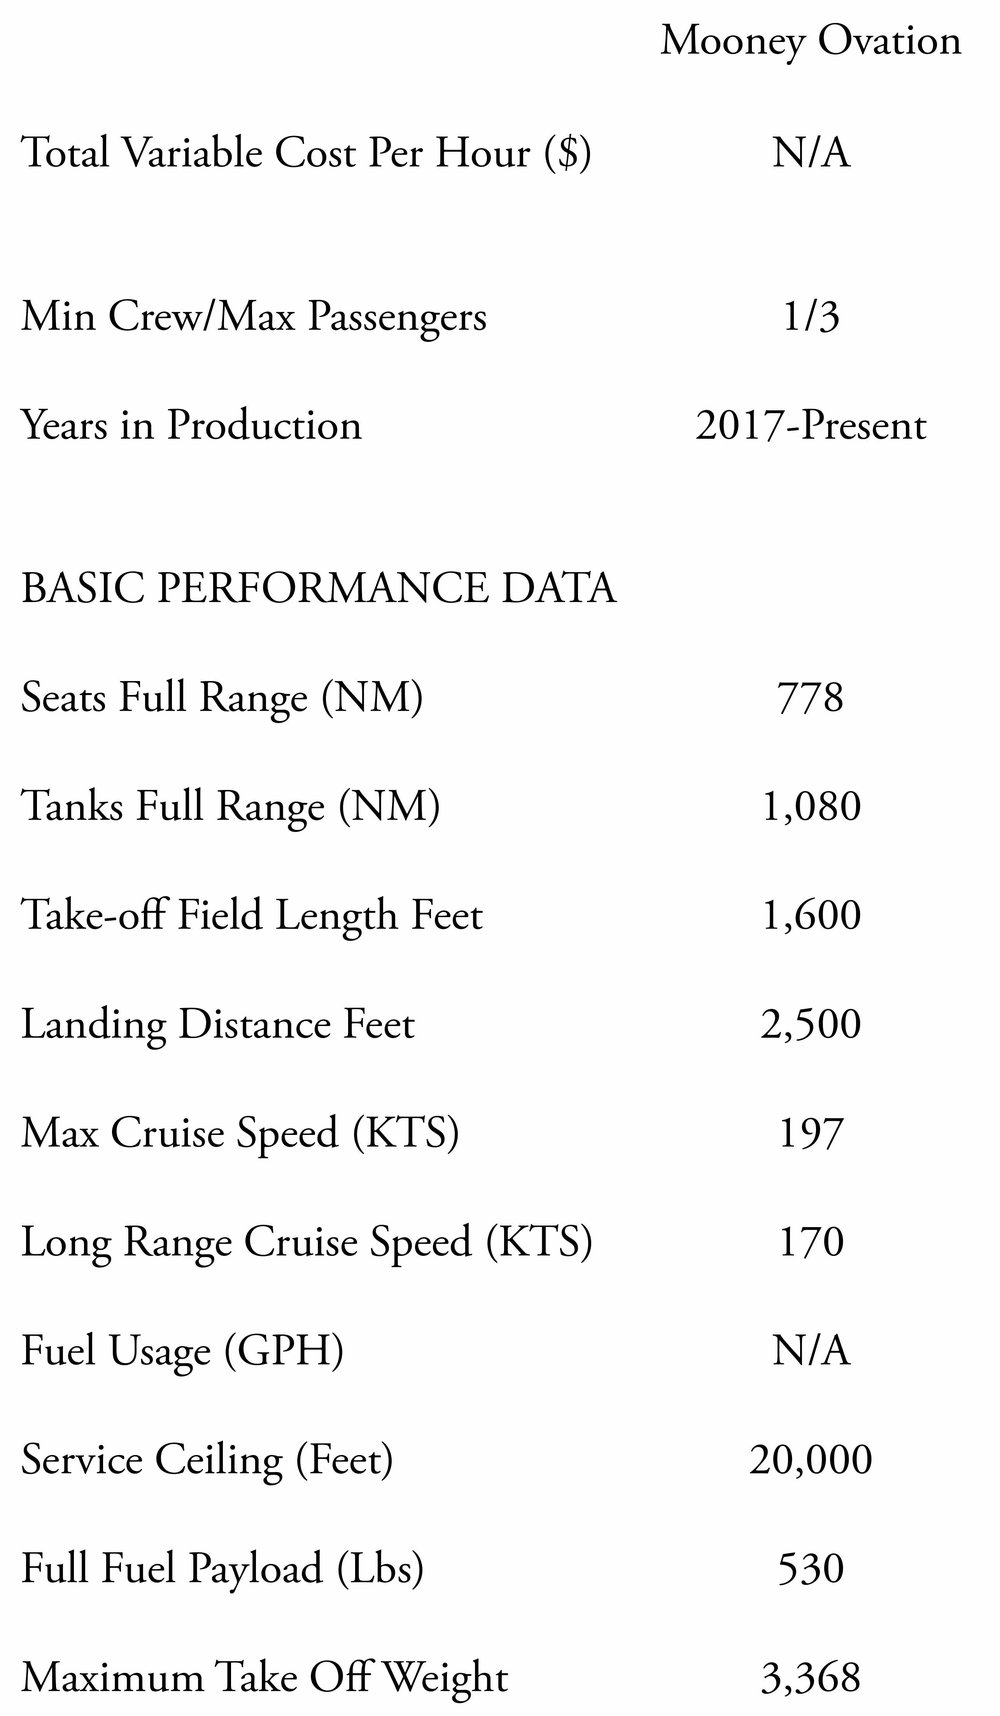 Mooney Ovation specs compared to its sister aircraft the Acclaim. Operation costs, variable costs, seats full range, take-off field length, ect.